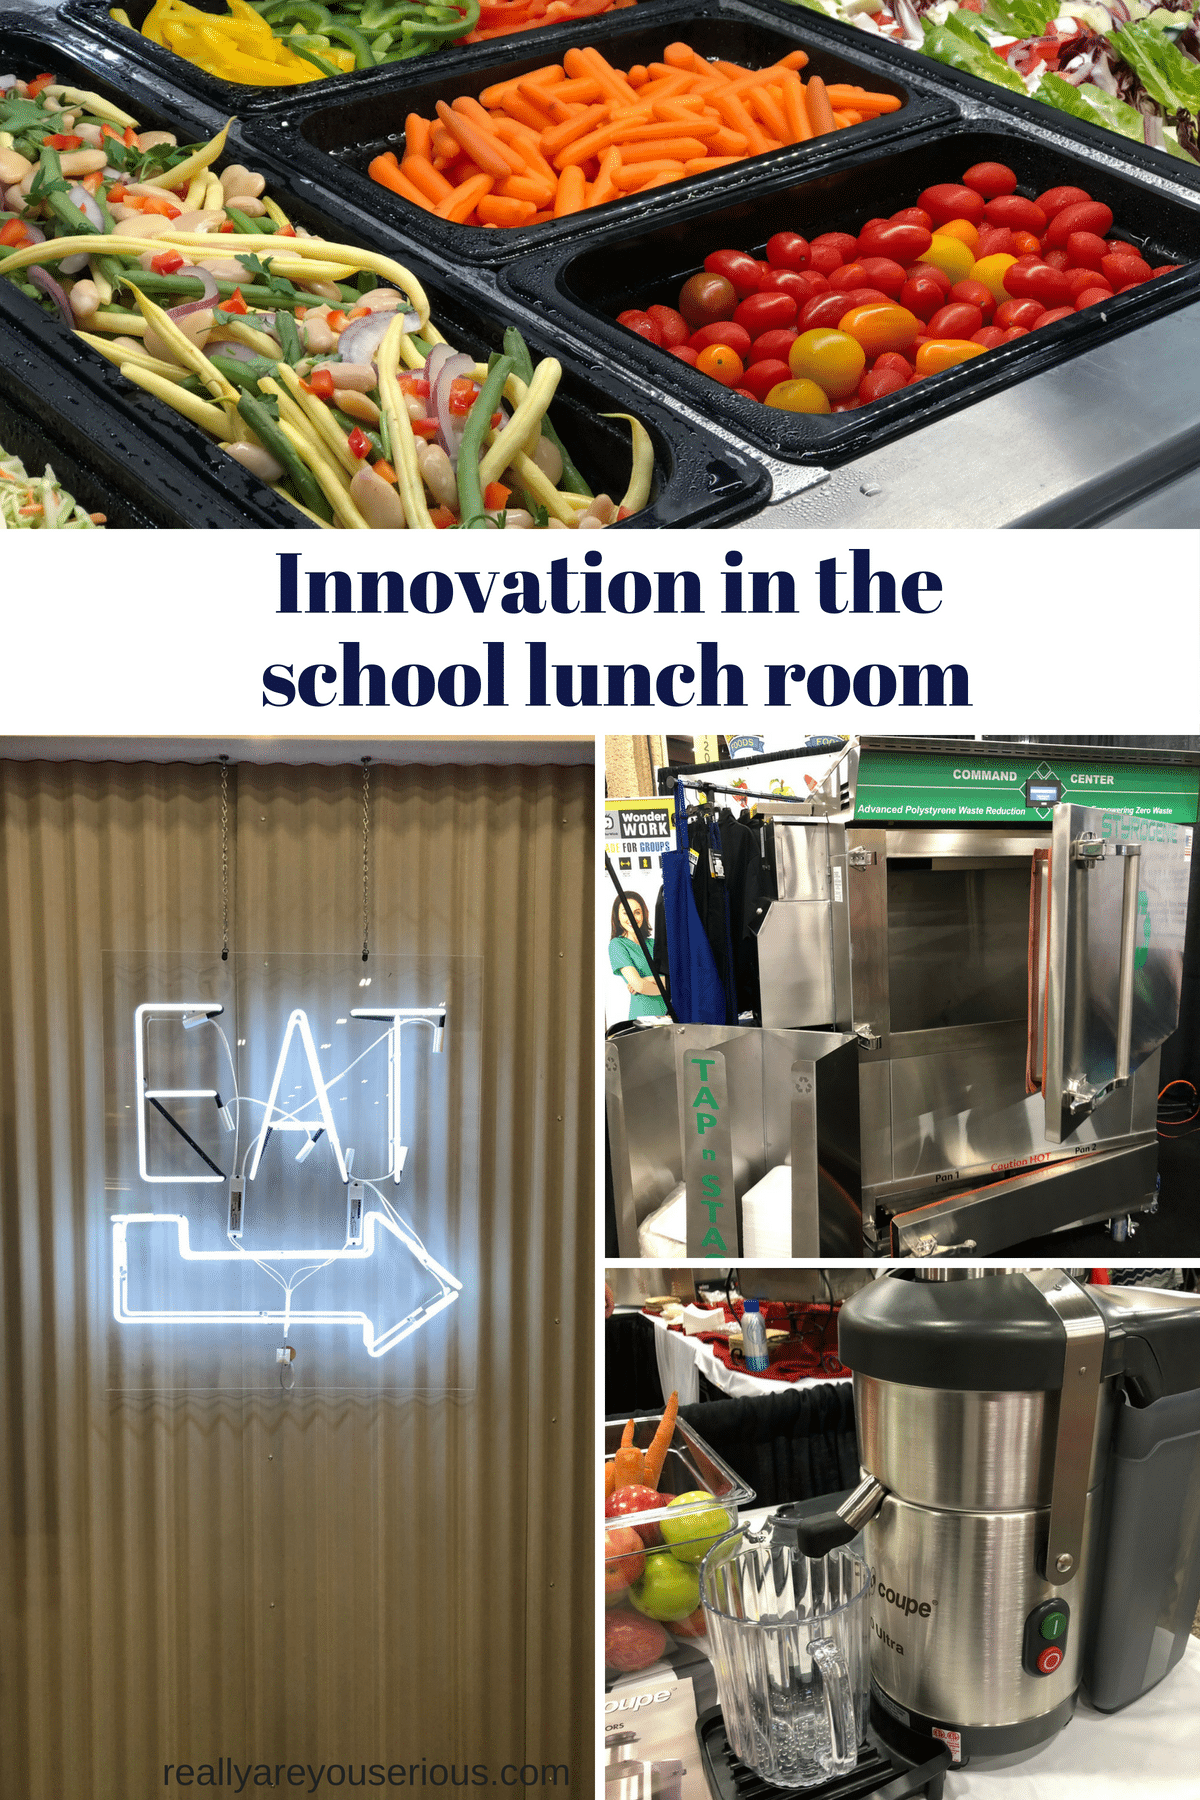 Innovation in the school lunch room